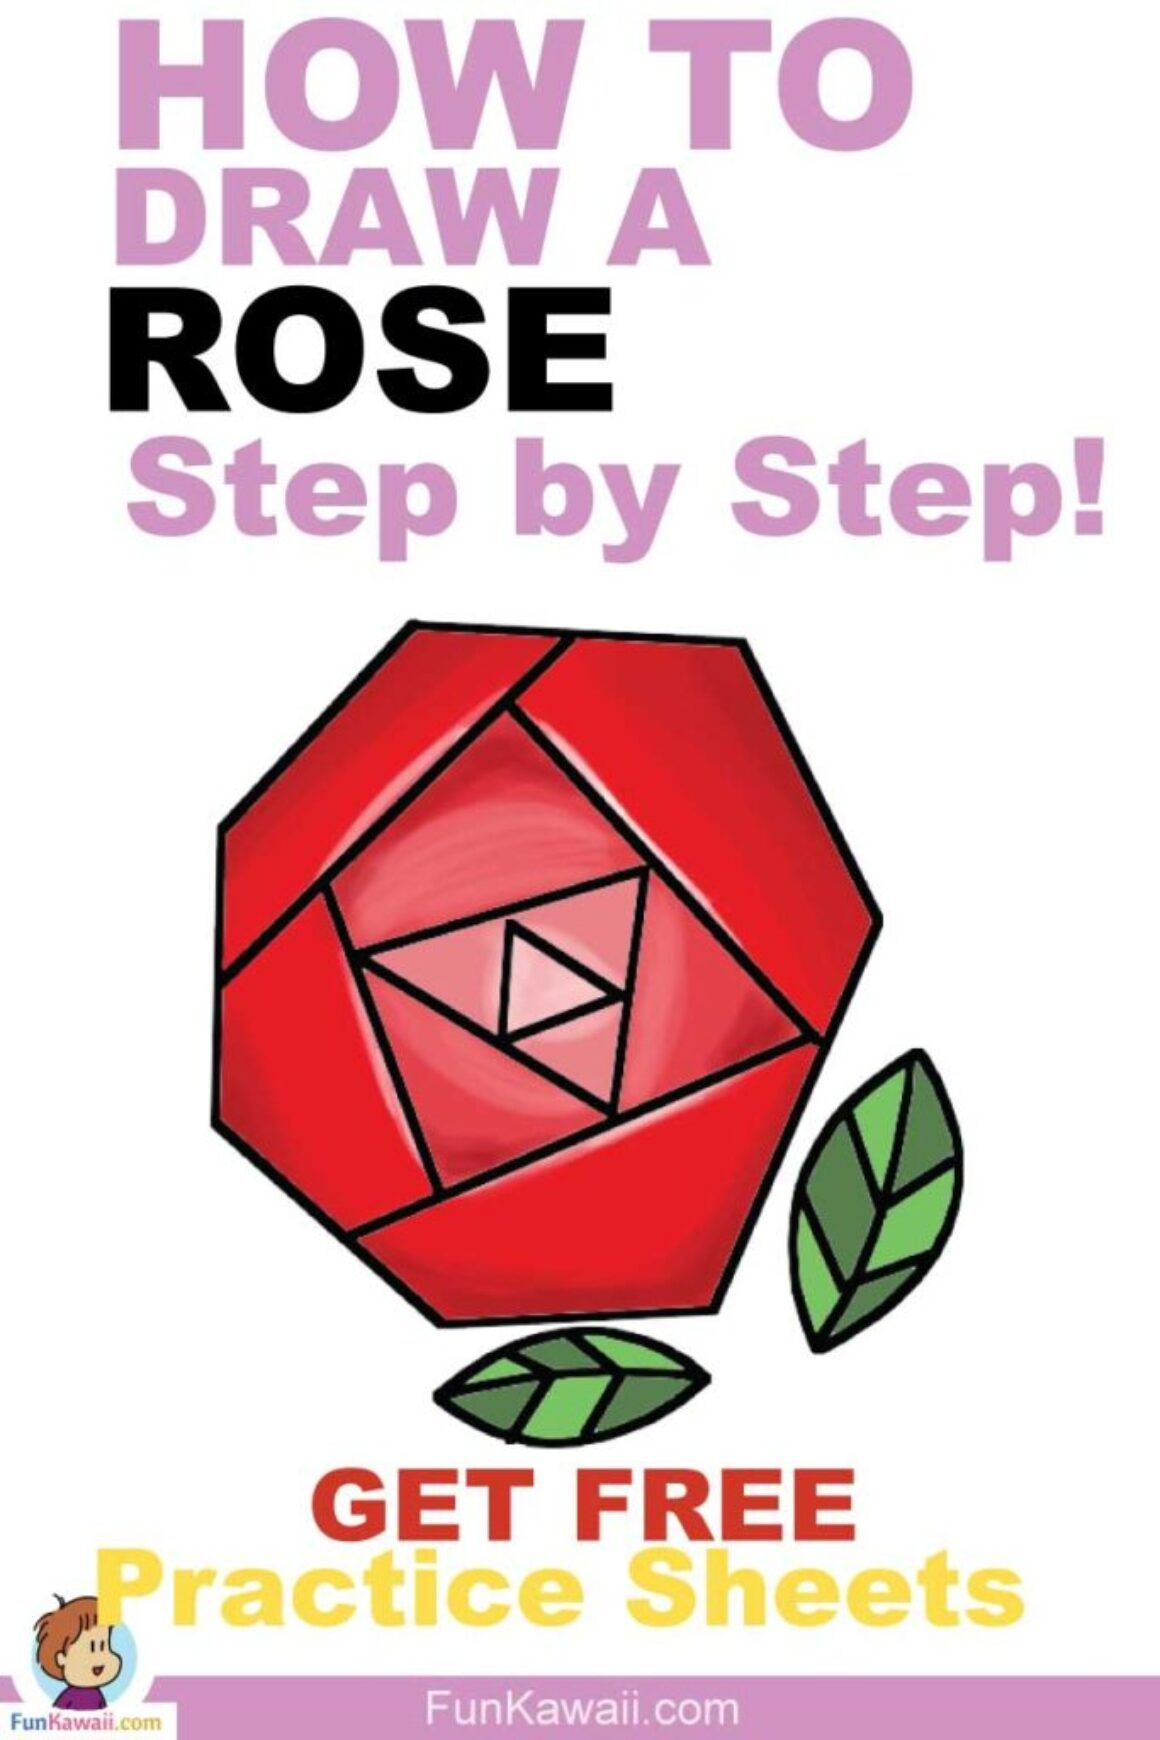 How To Draw A Rose Step By Step Tutorial 3